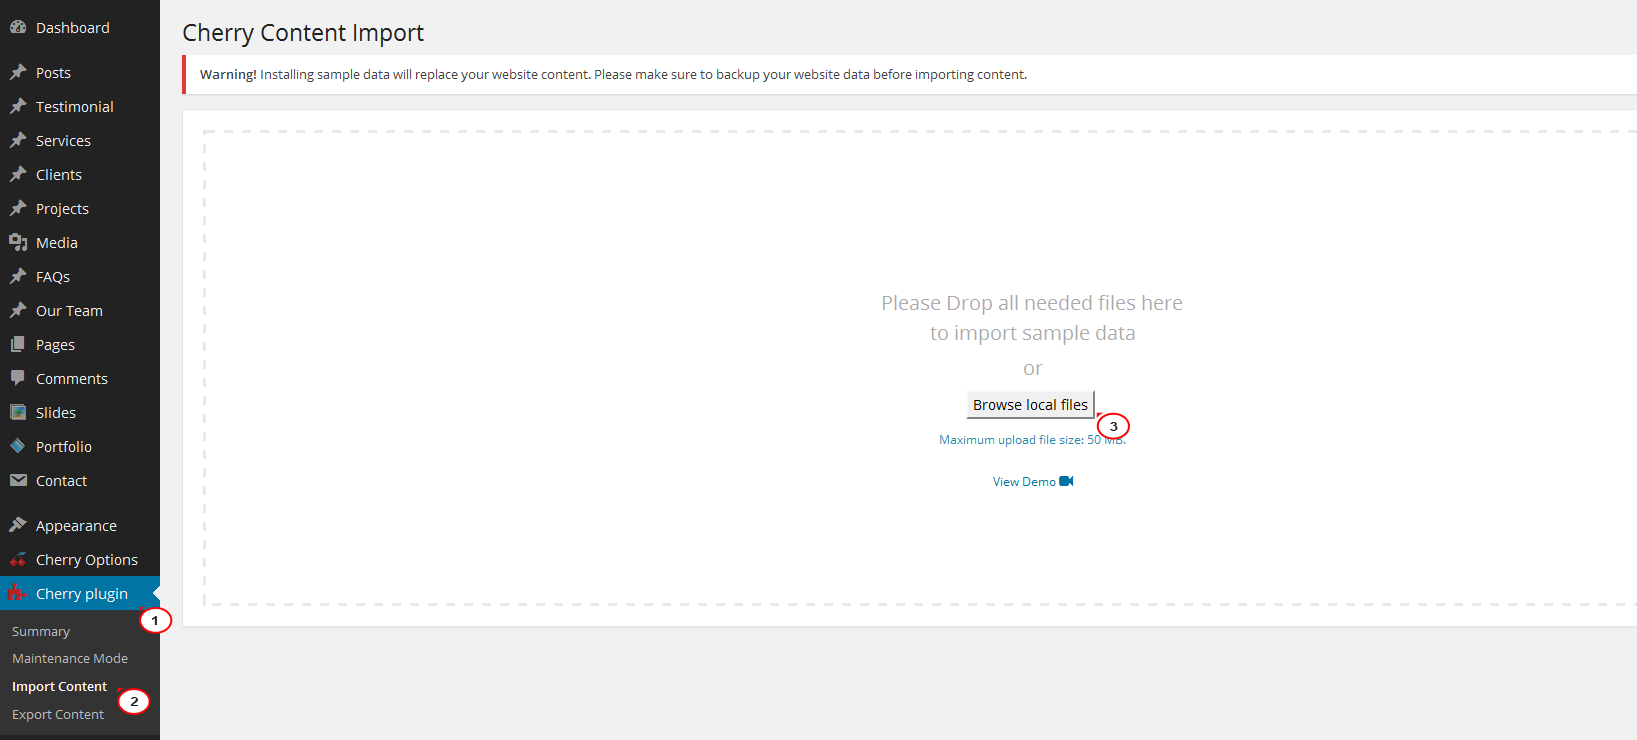 Wordpress Troubleshooter Missing Images After